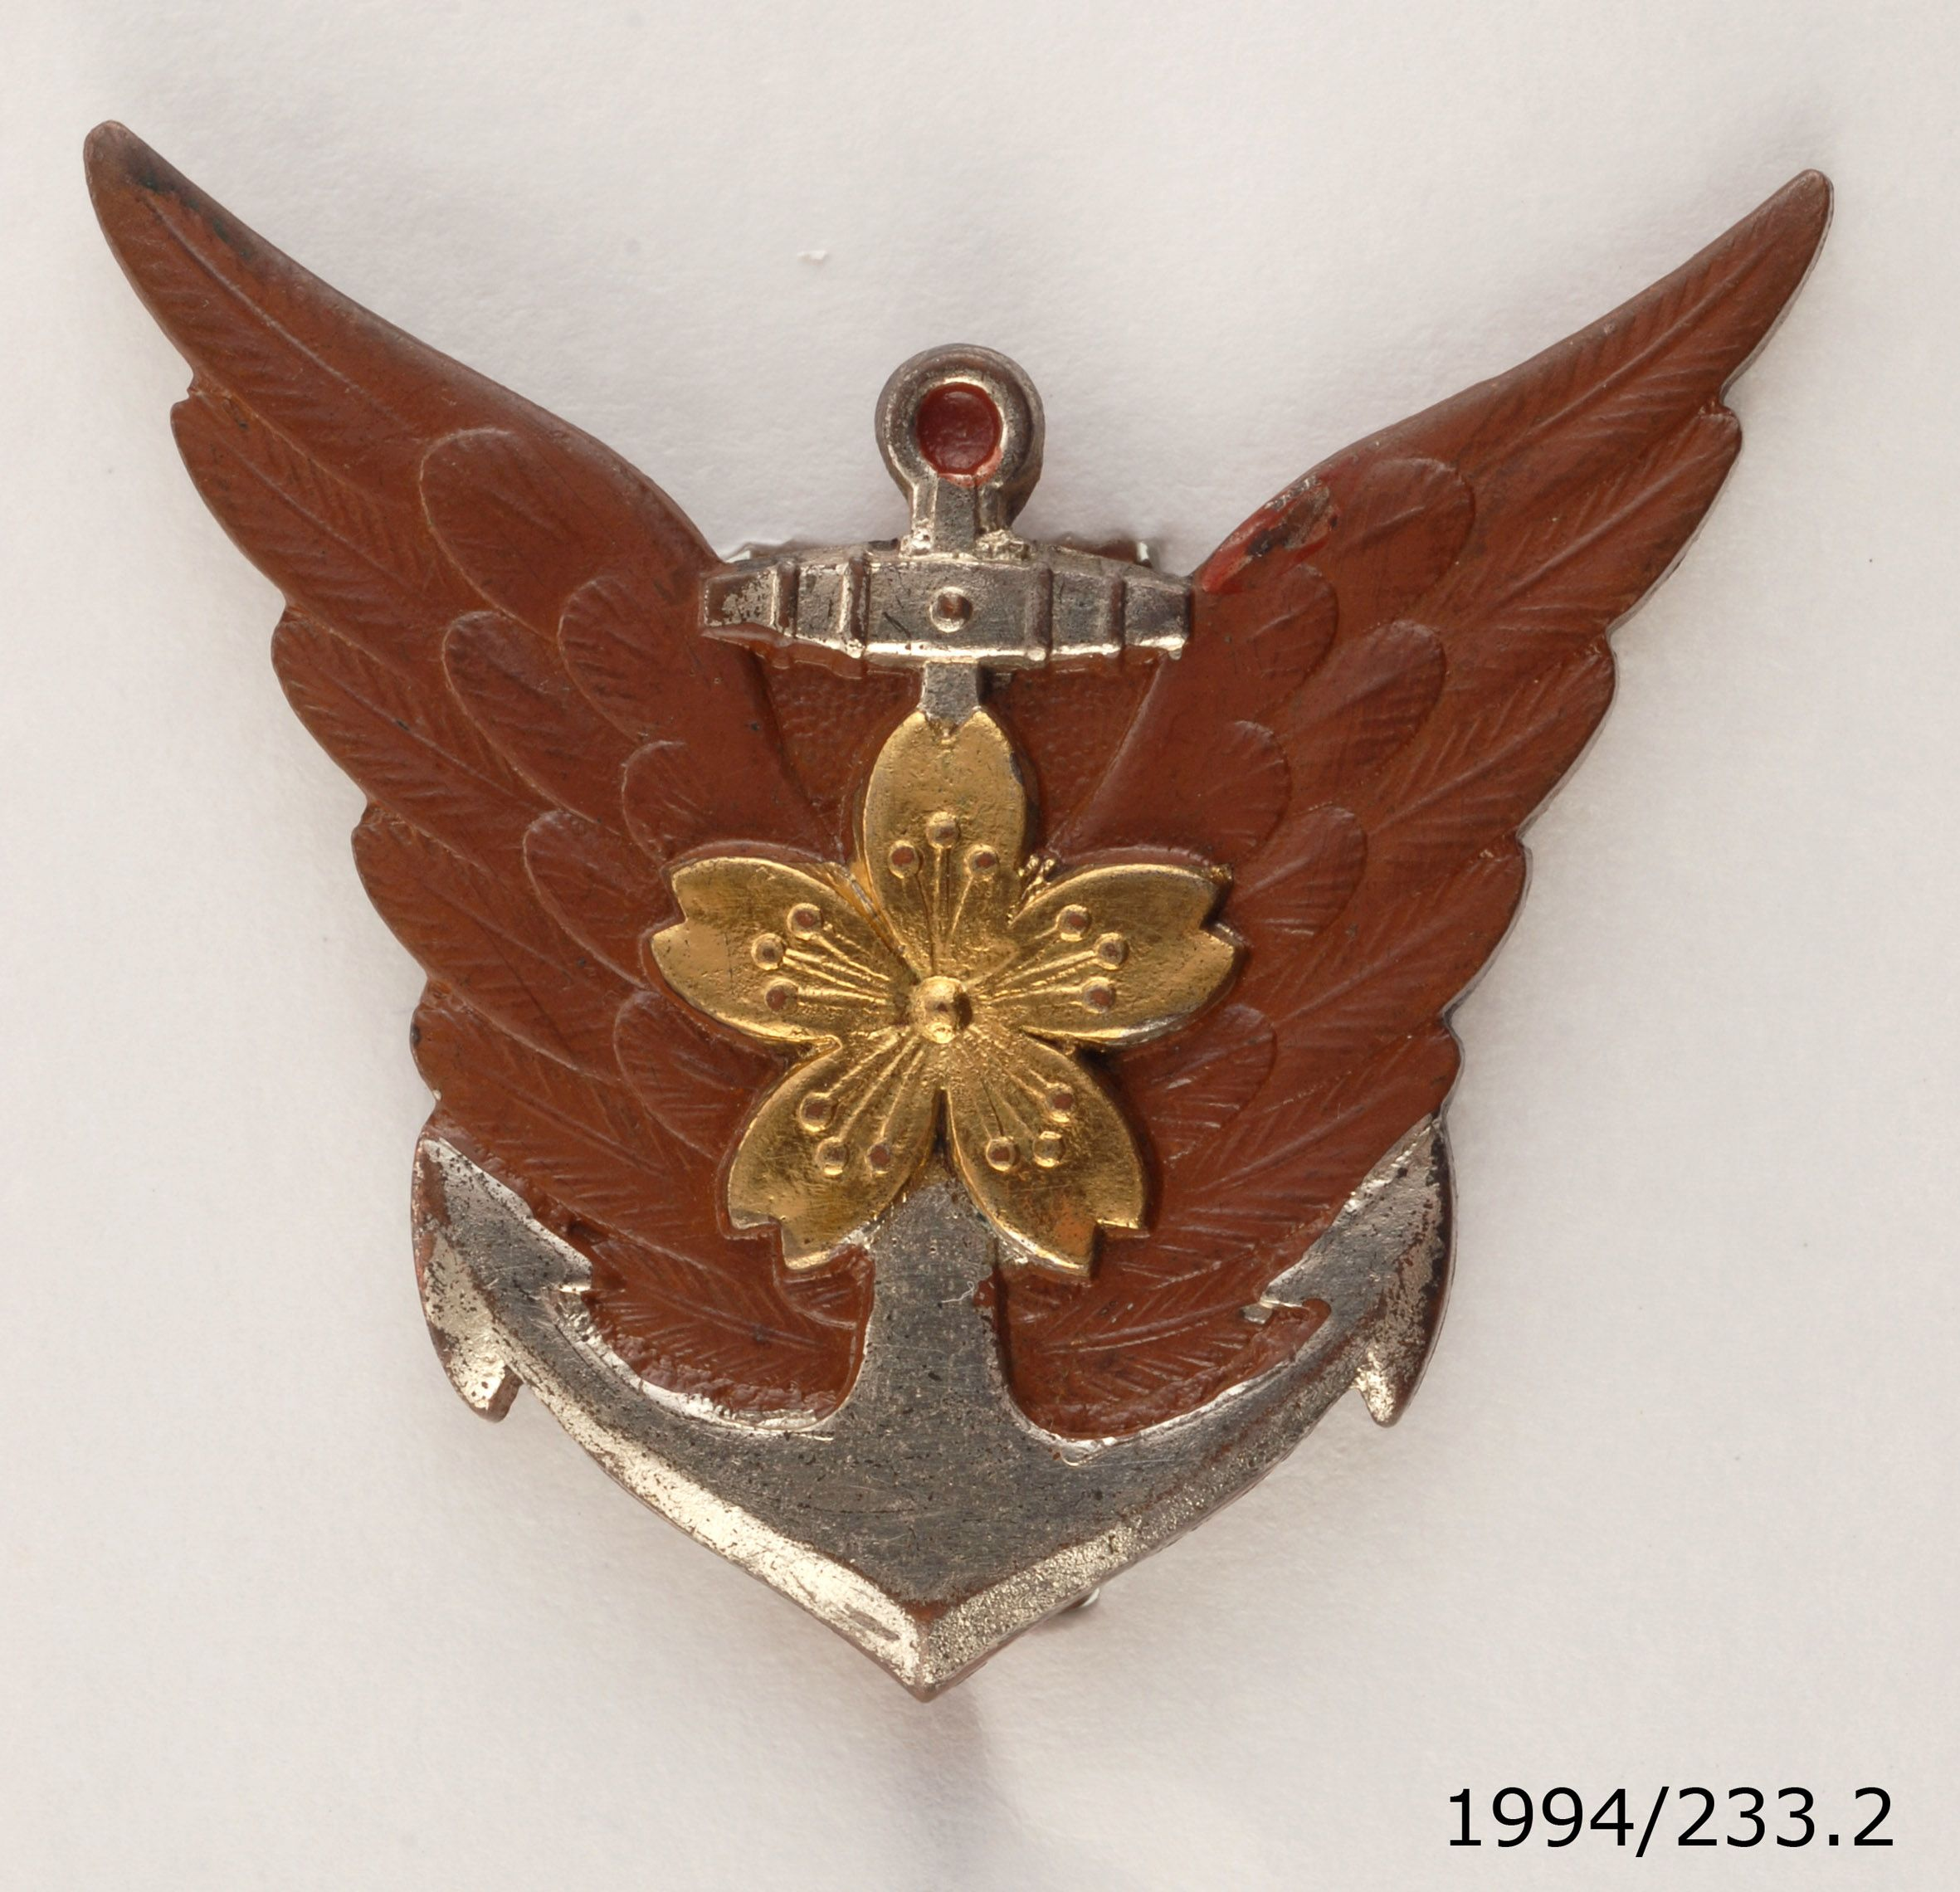 Japanese naval pilot's badge, circa WWII. From the